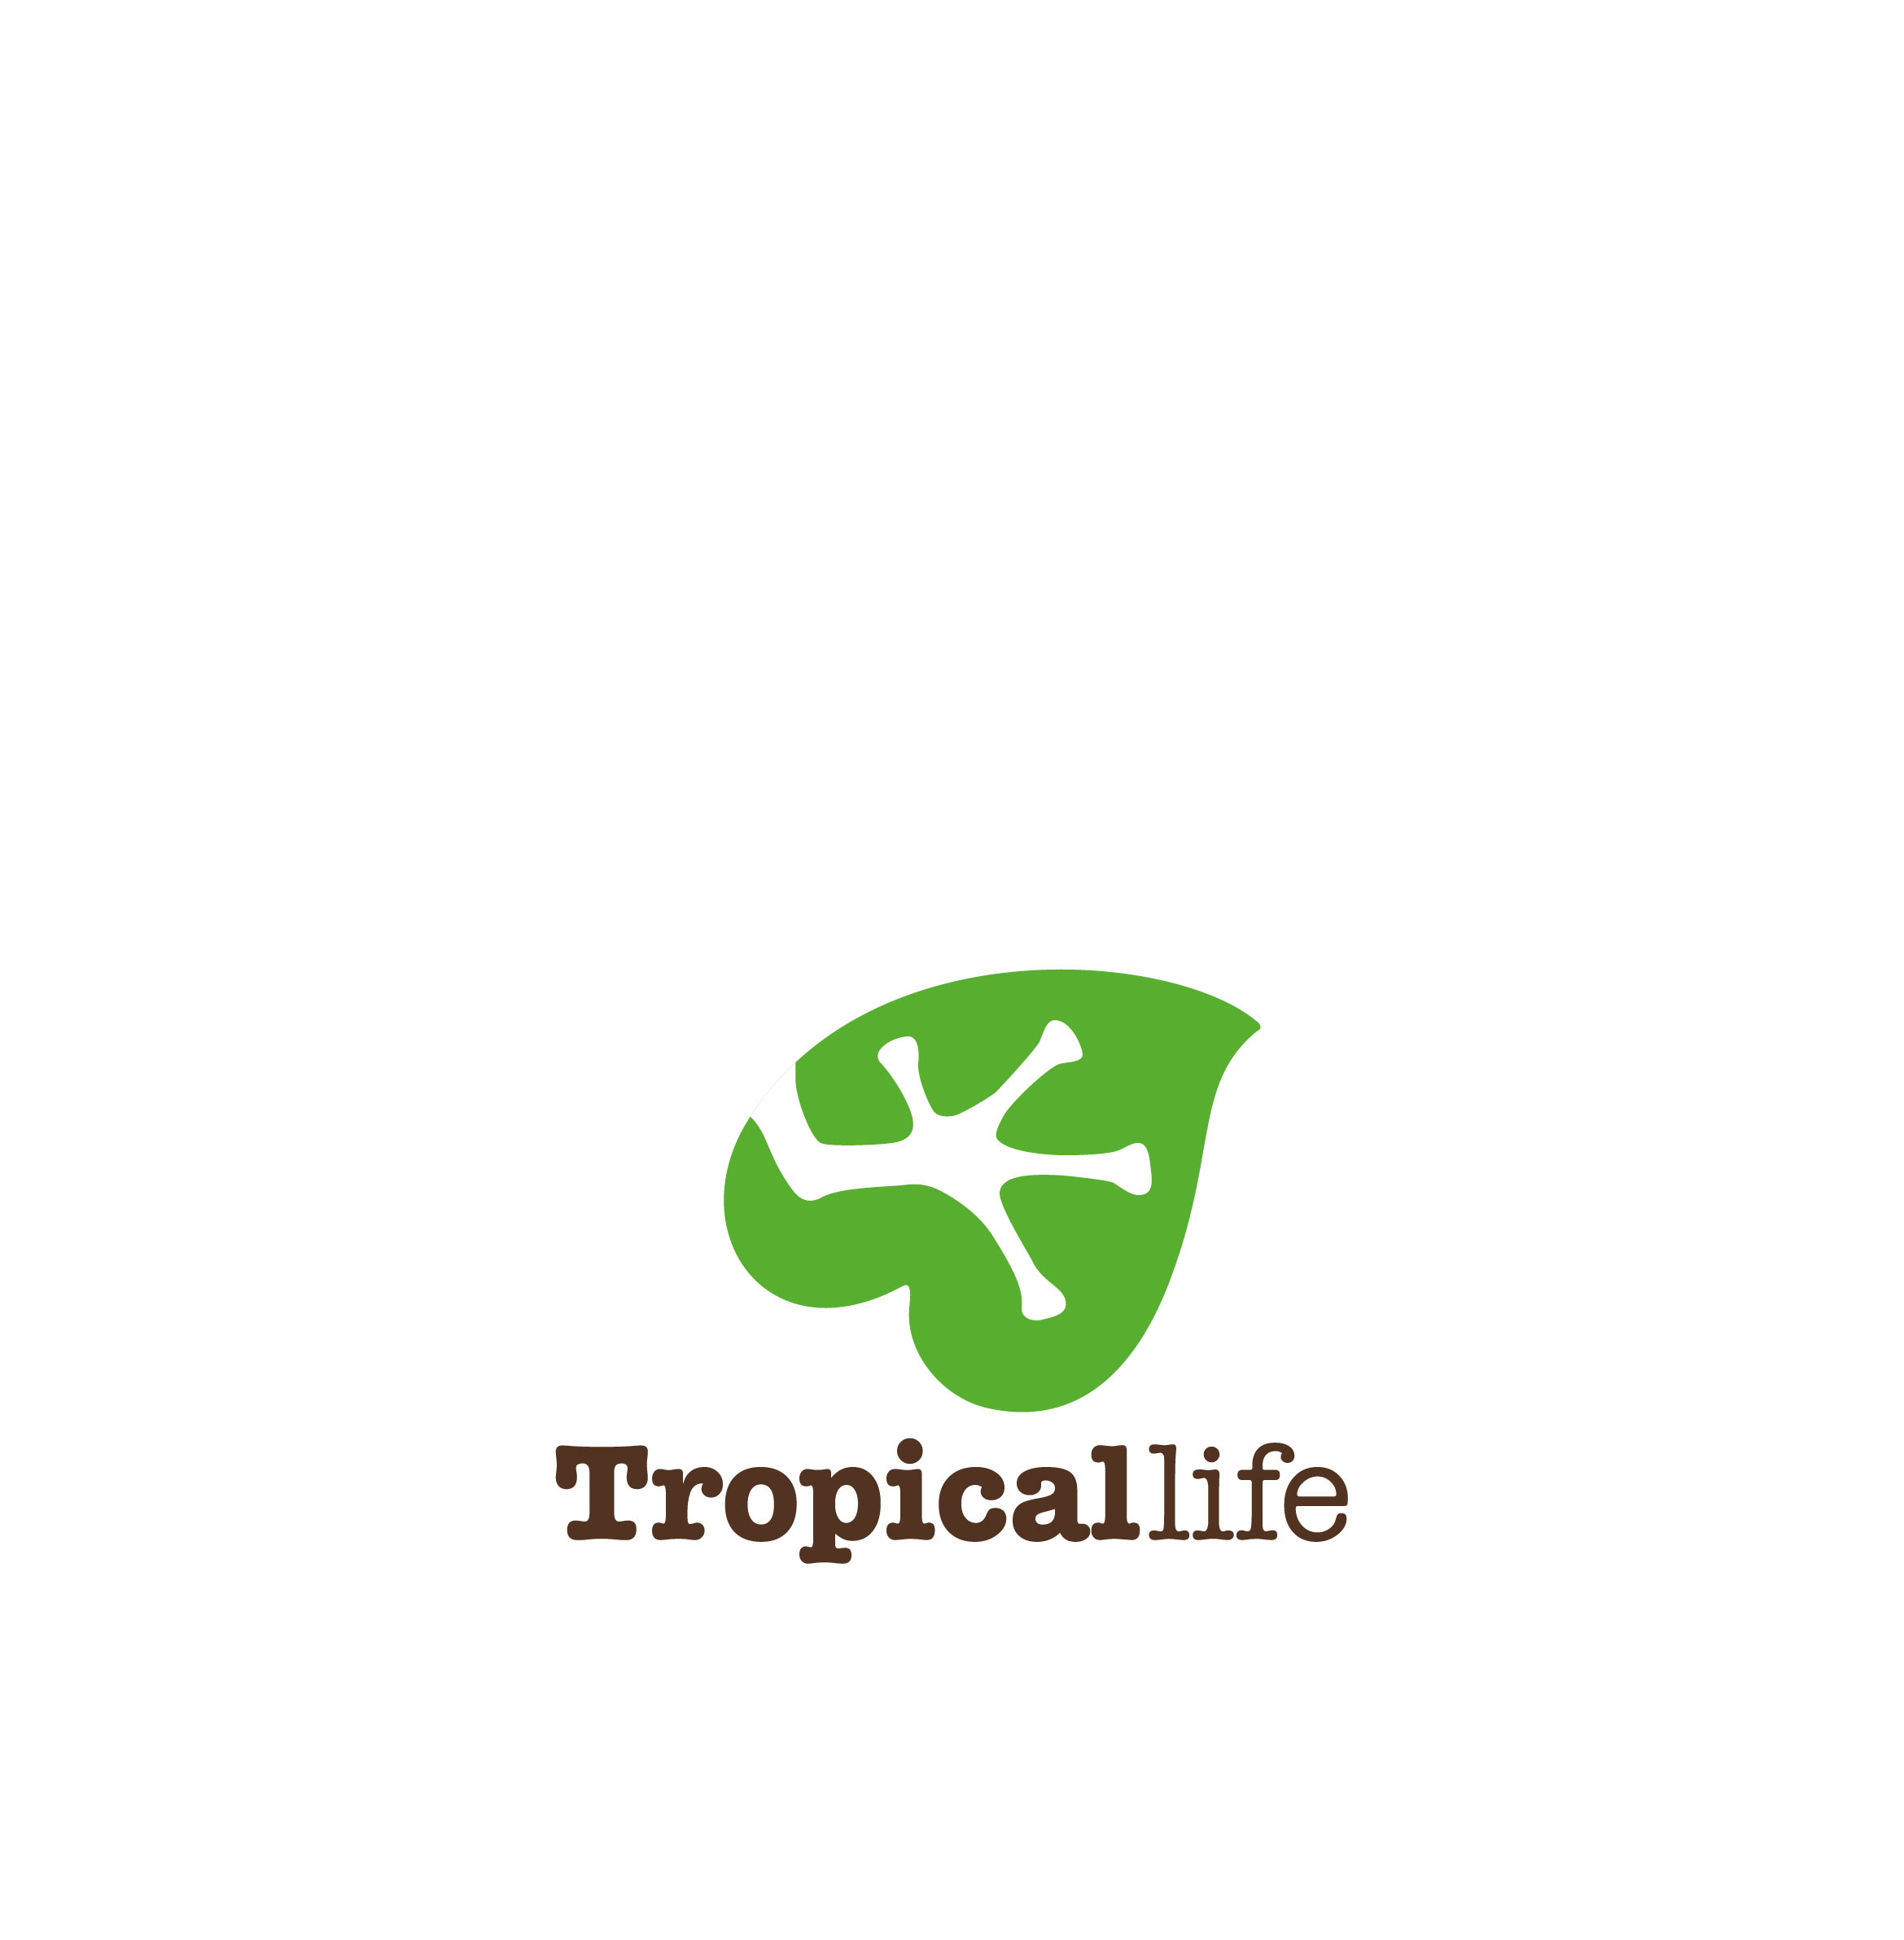 tropicallife-branding-wide-01